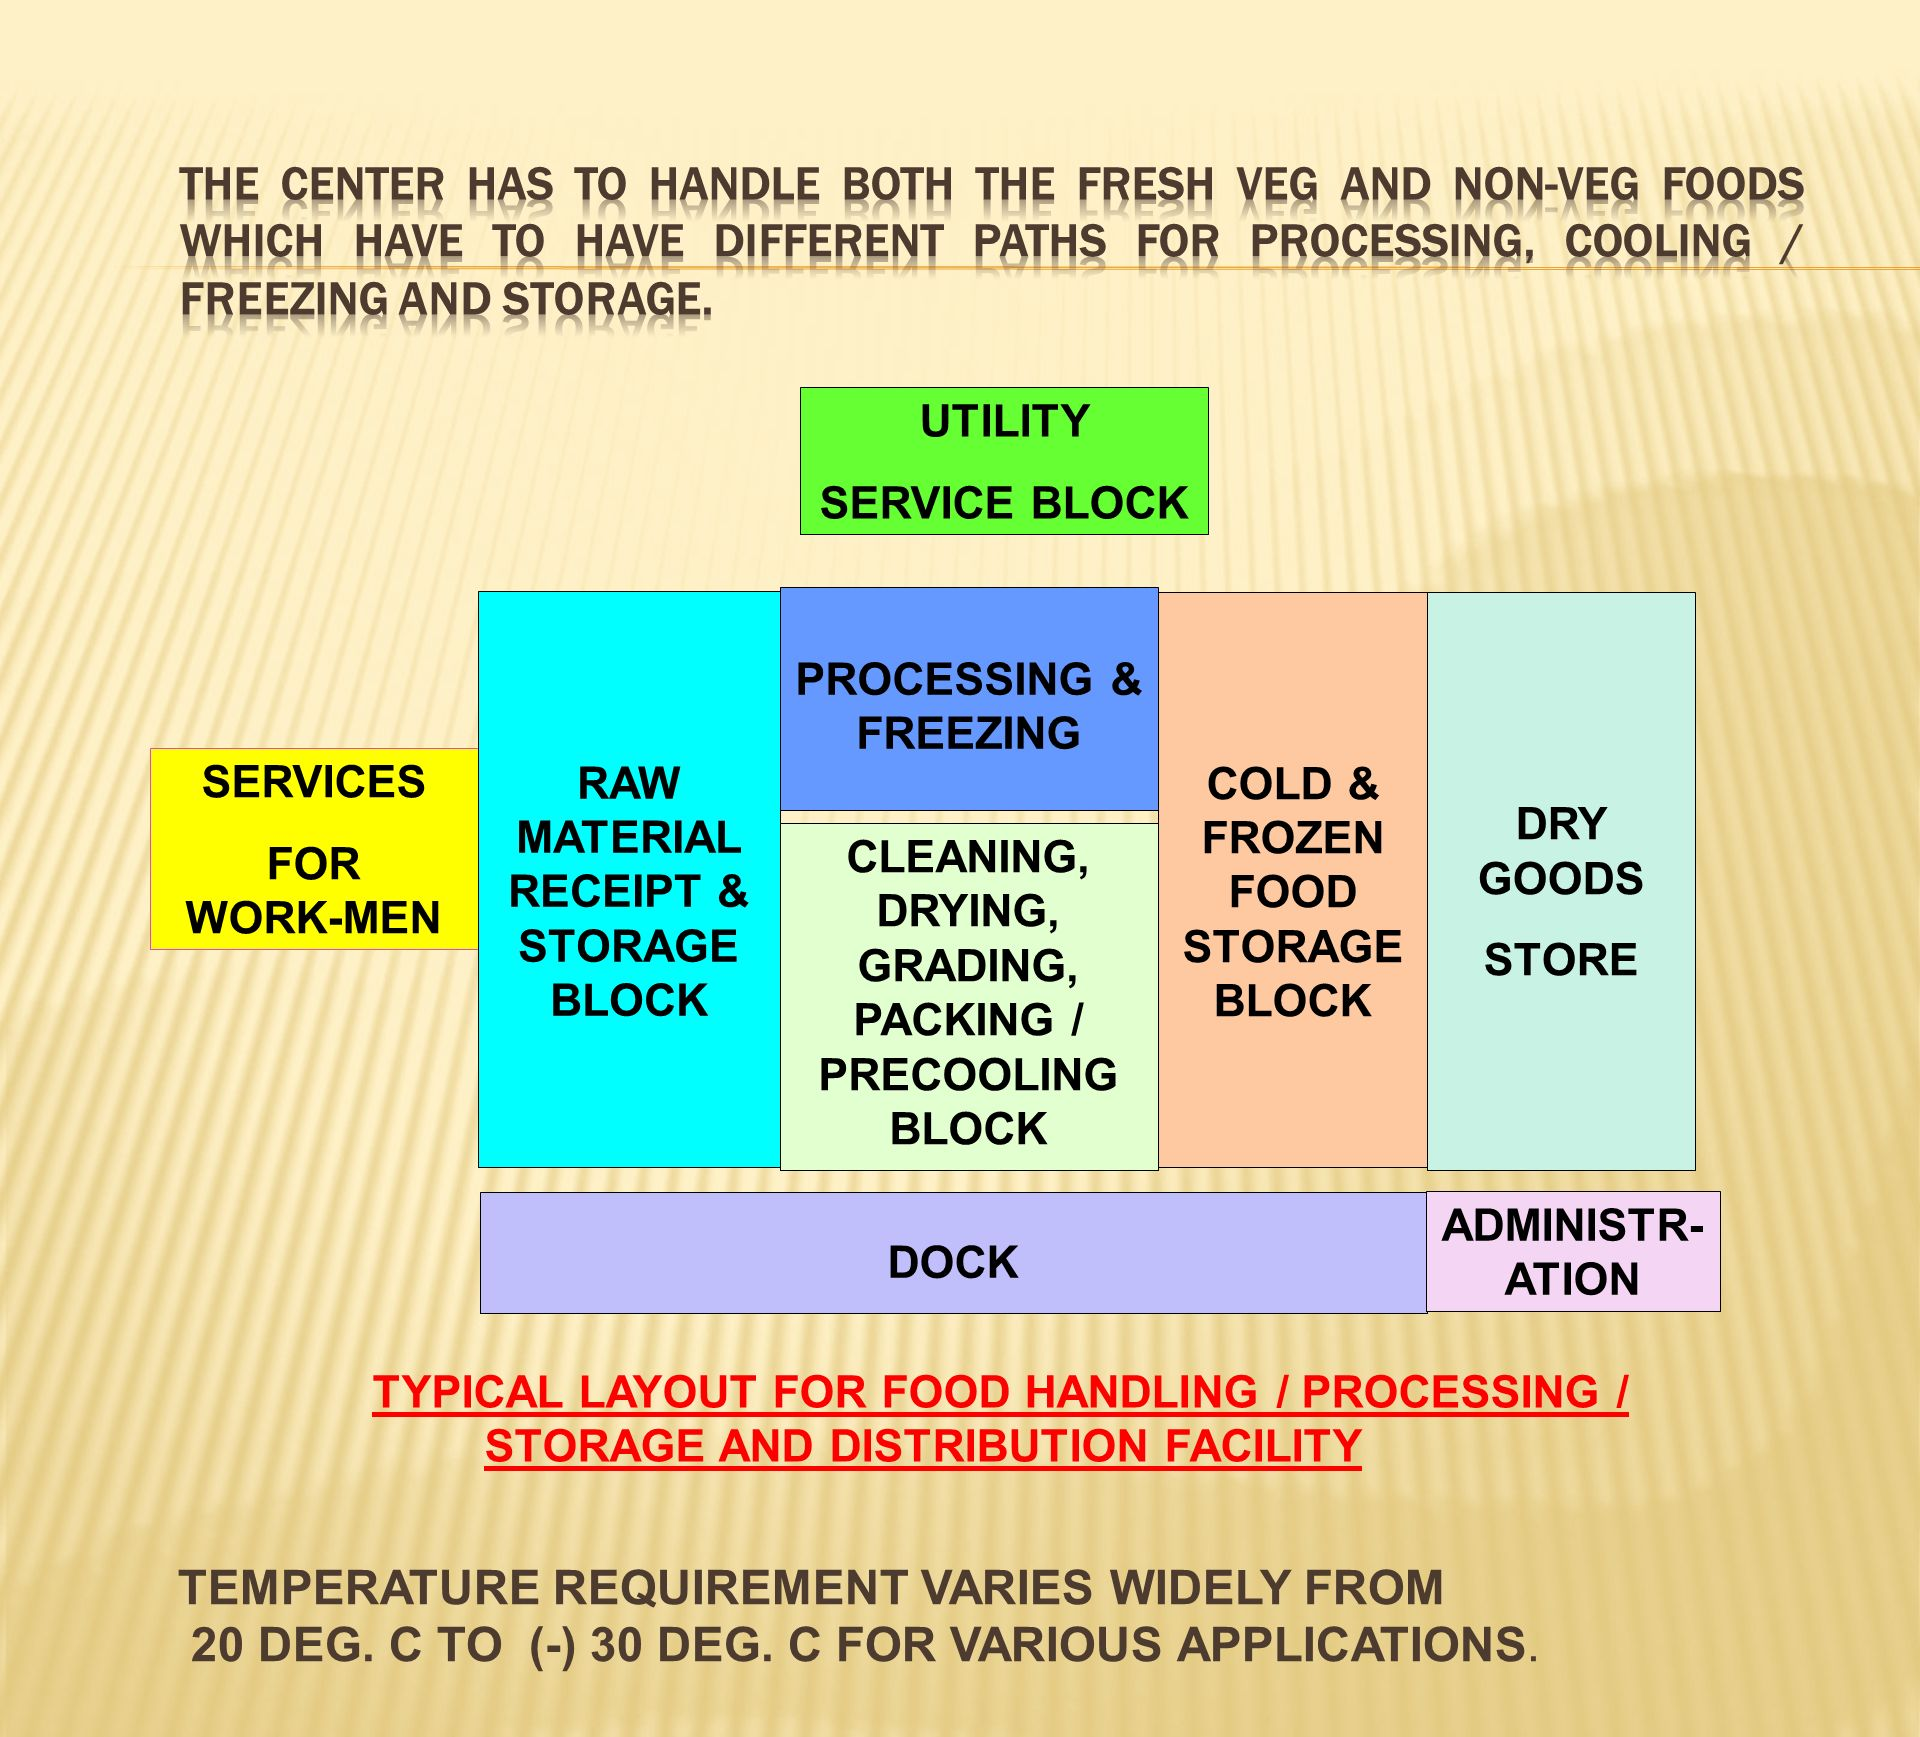 TEMPERATURE REQUIREMENT VARIES WIDELY FROM